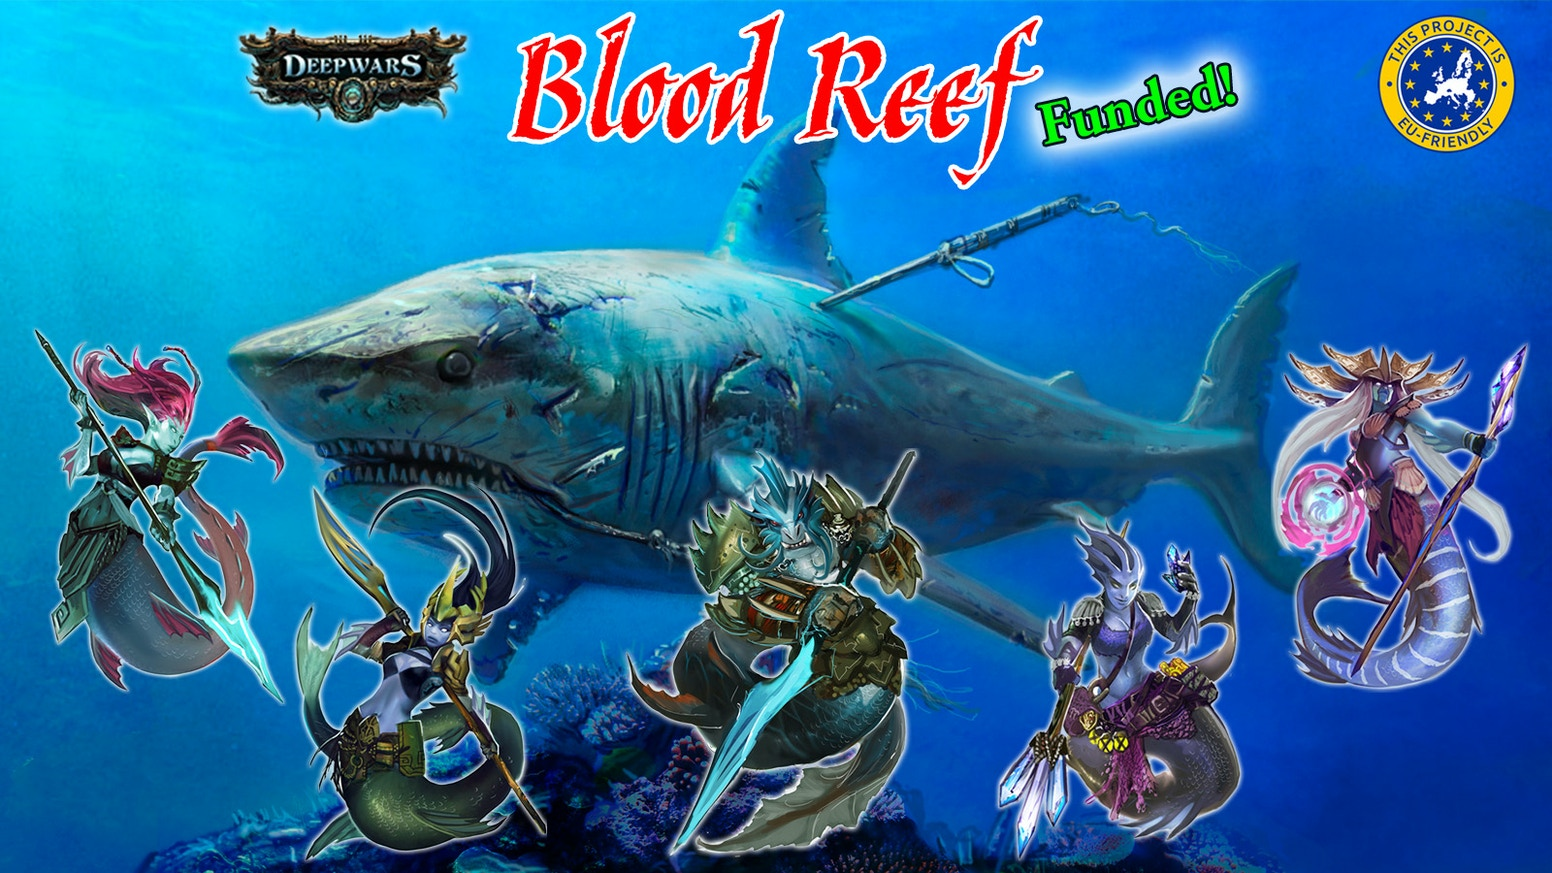 Battle in Blood Reef, a game setting for DeepWars, using the new Nereid force, giant sharks and other terrors of the sea.